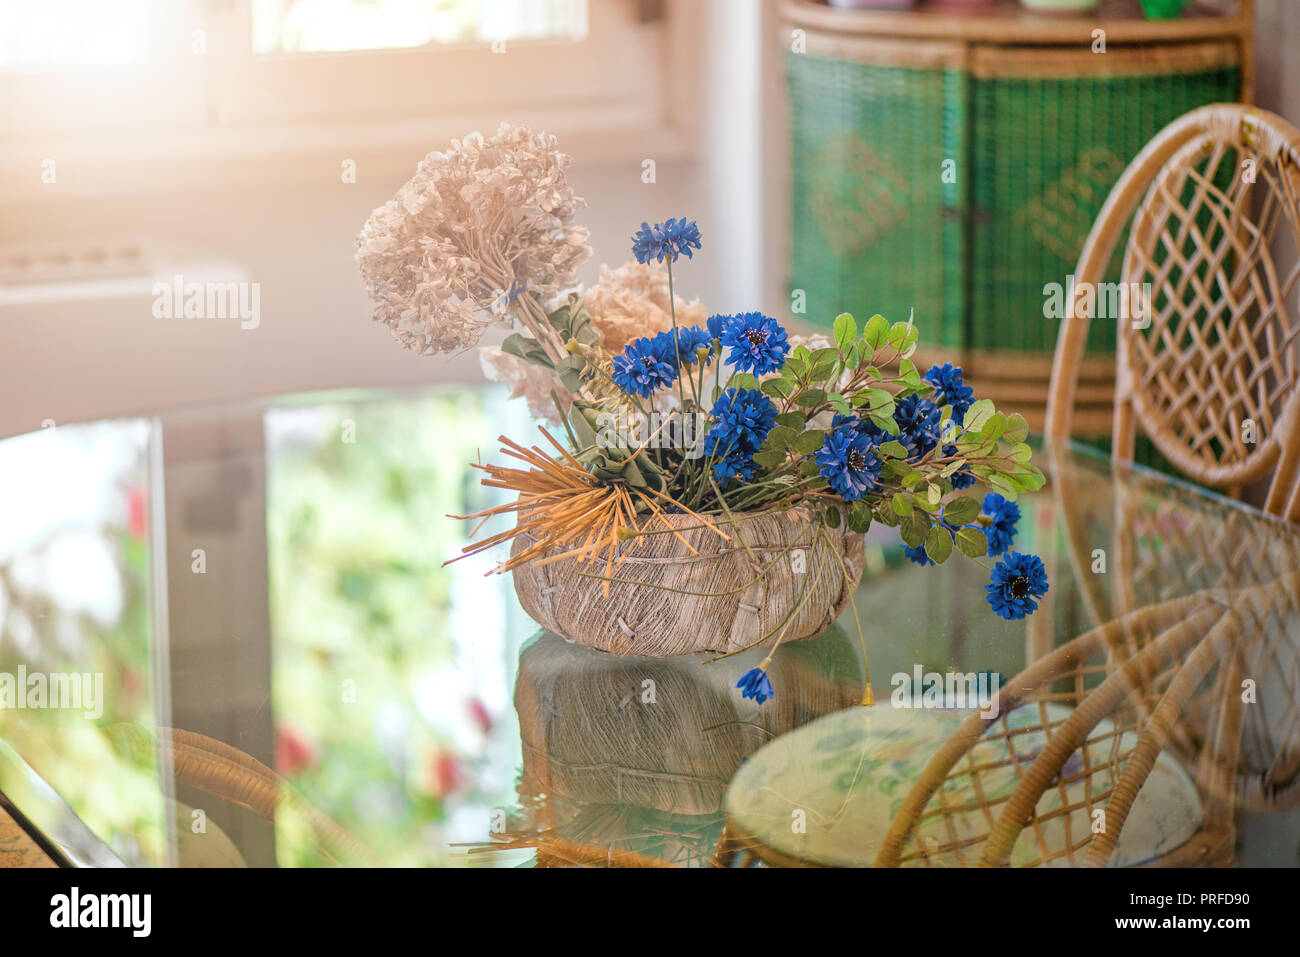 Dining Room With Big Glass Table And Decorations All Around The Place Dried Flowers Wicker Chairs Clay Pottery Cozy Atmosphere At Home Concept Of Stock Photo Alamy